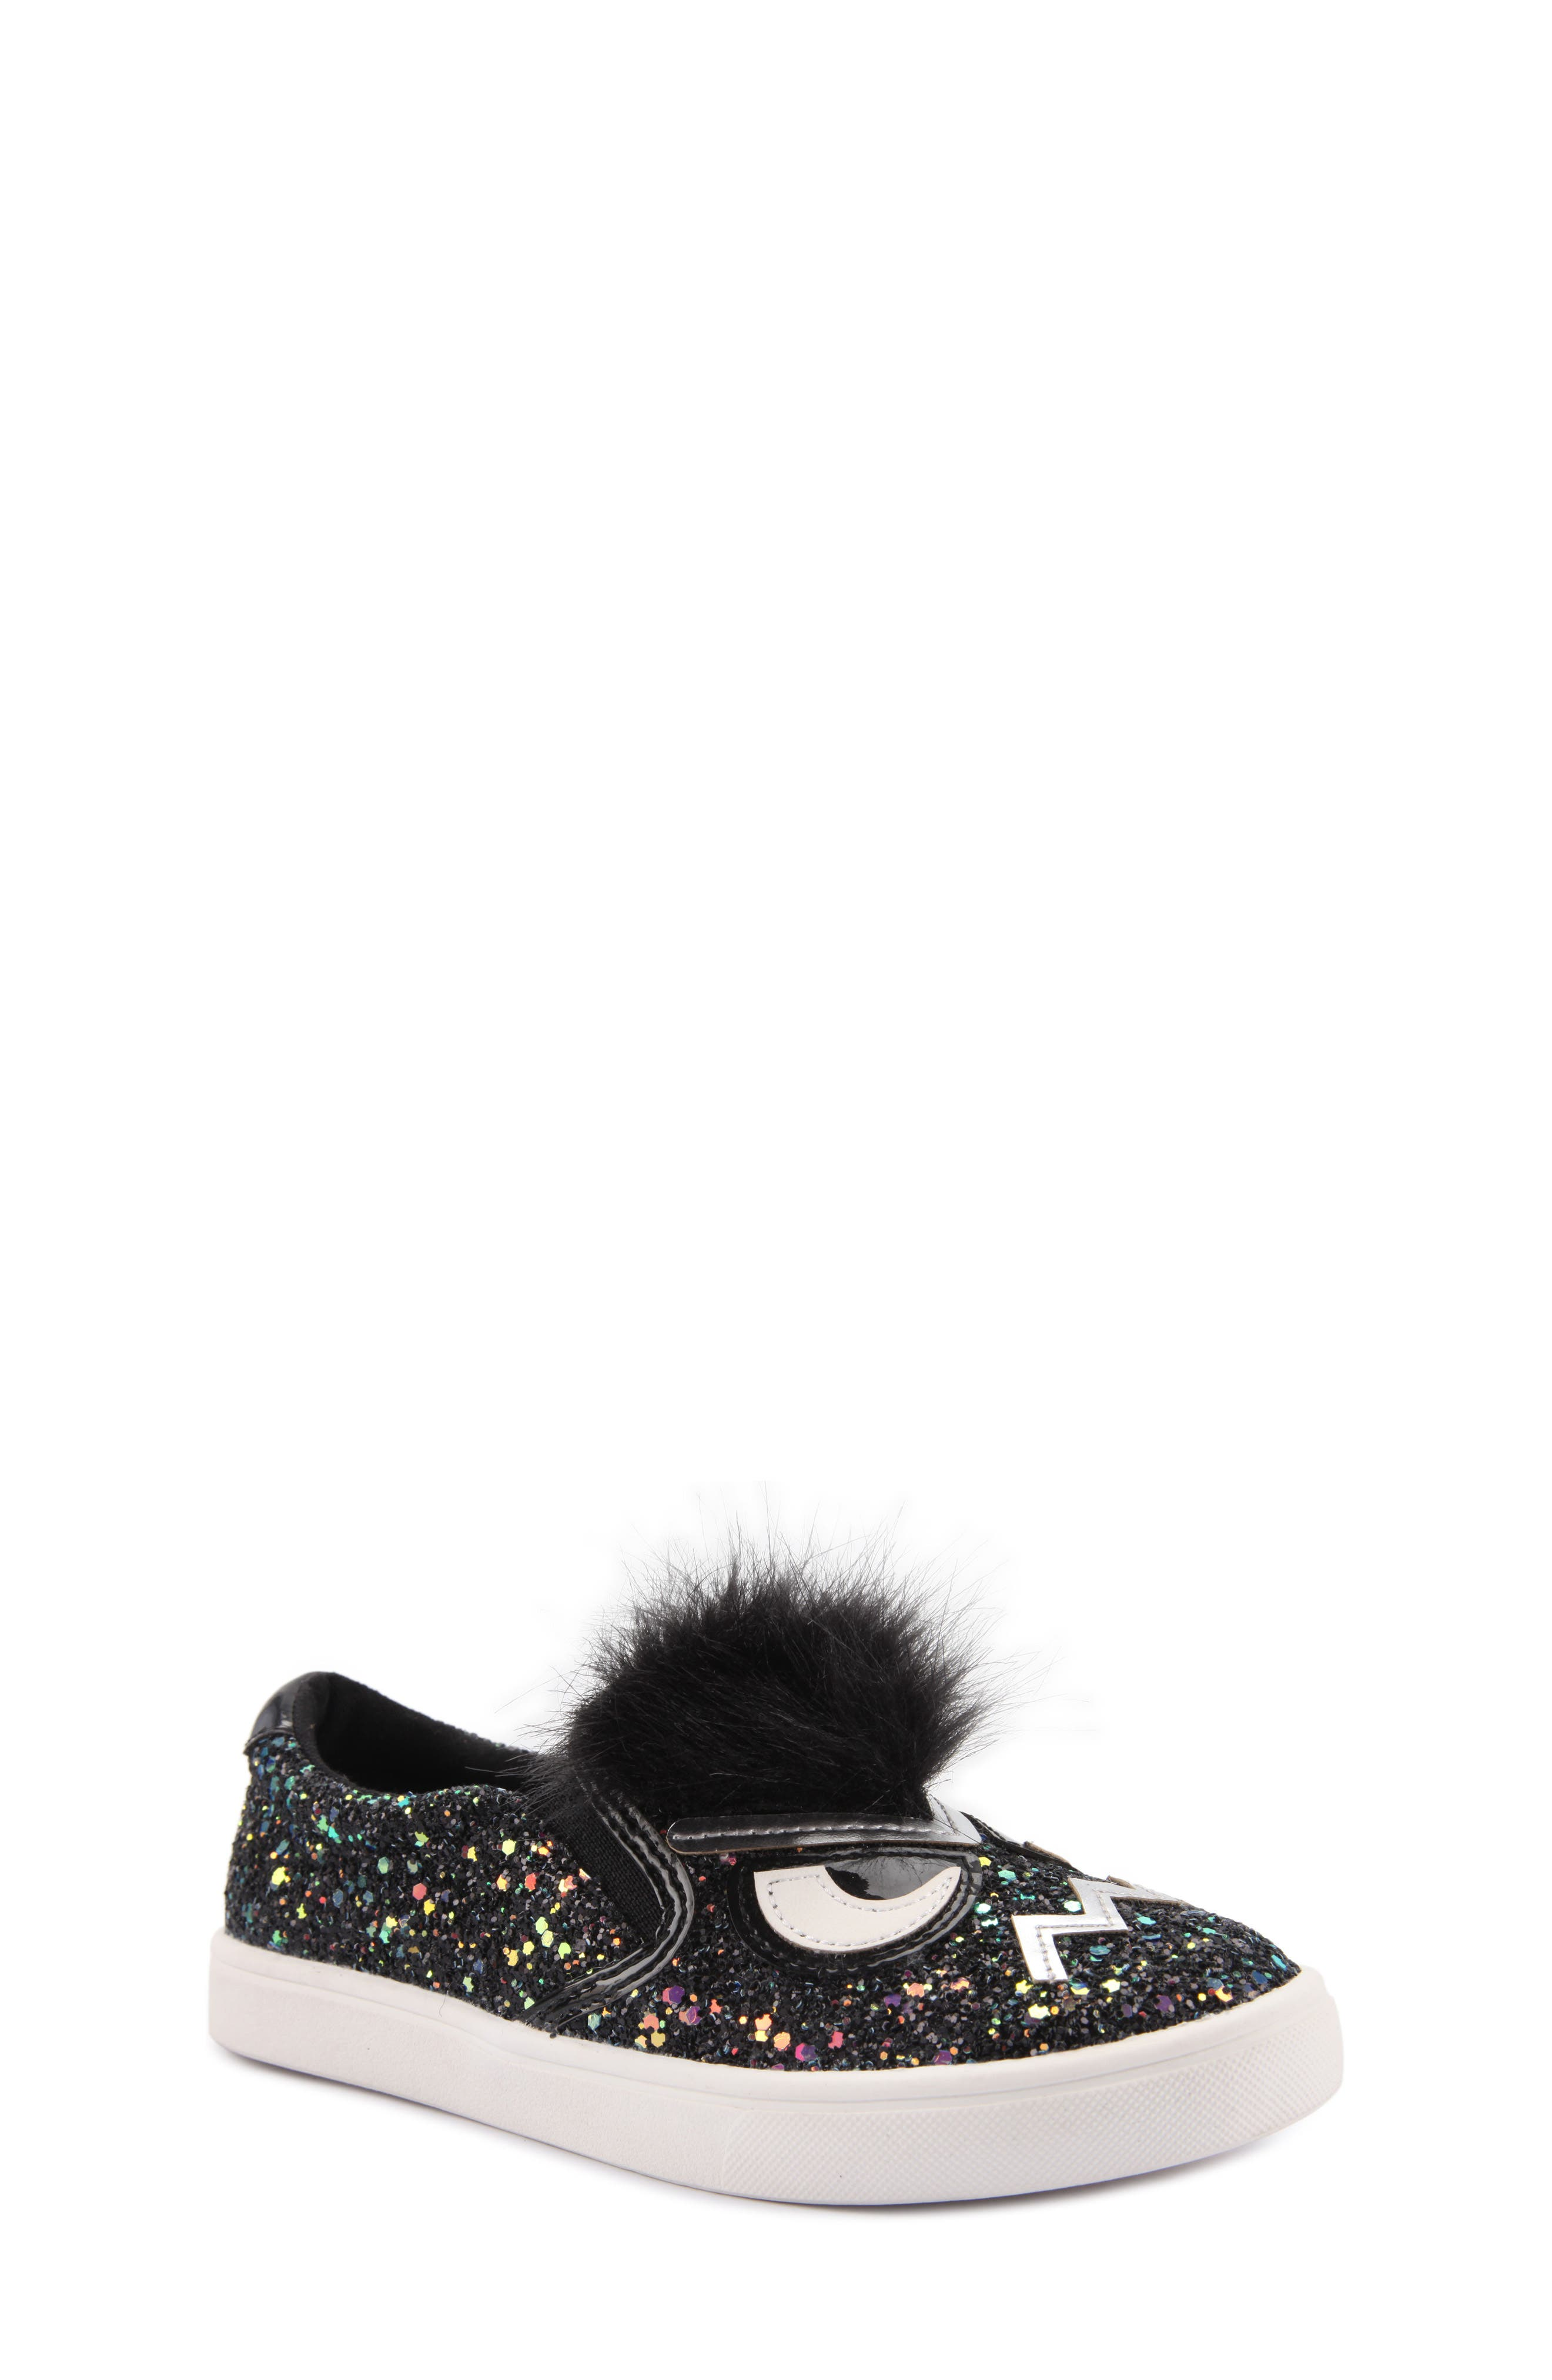 Alyx Faux Fur Glittery Slip-On Sneaker,                         Main,                         color, Black Chunky Glitter